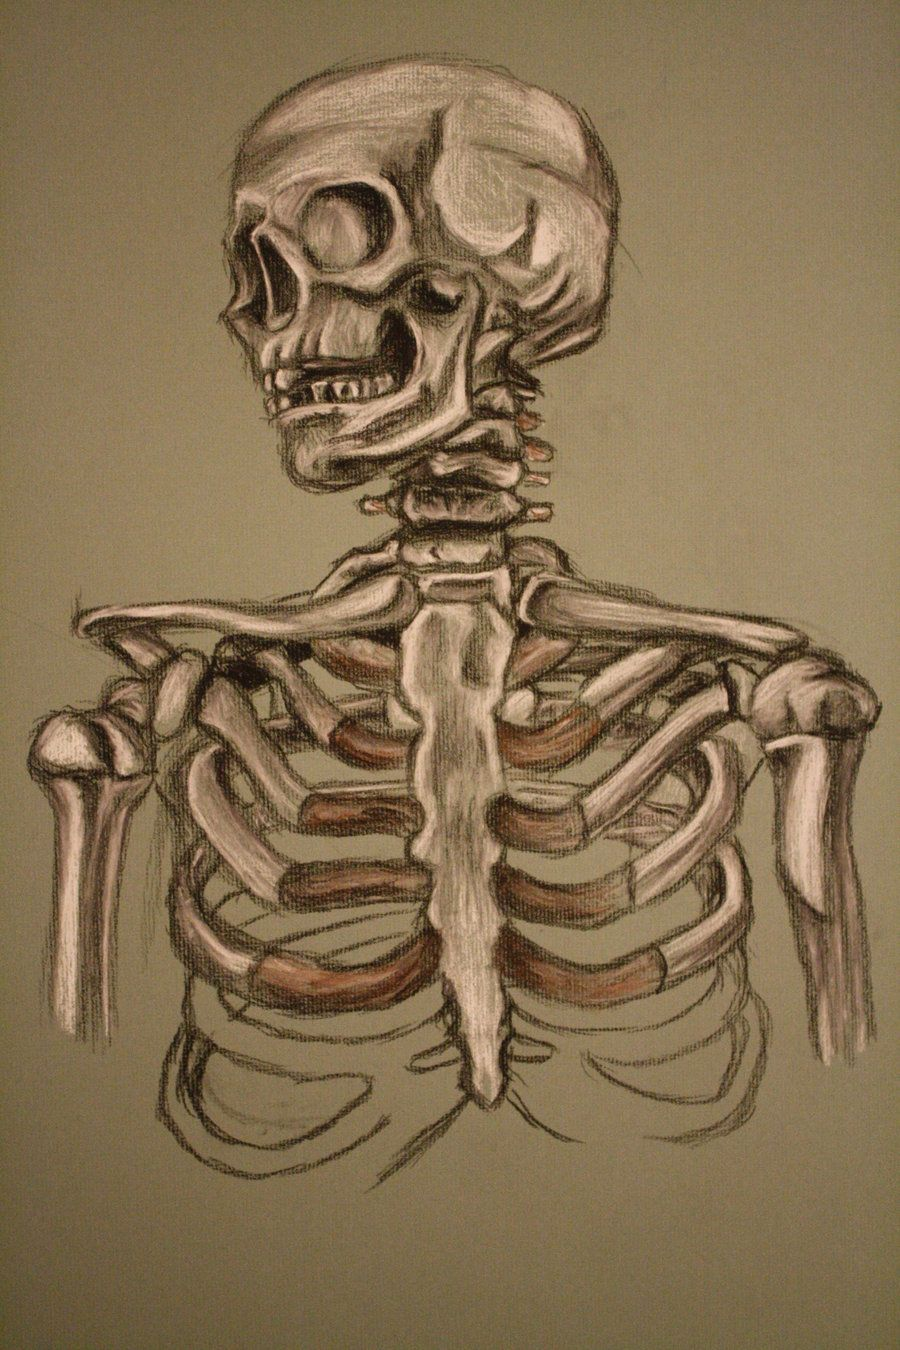 Skeleton Study Sketch By Adamhallart On Deviantart Sketches